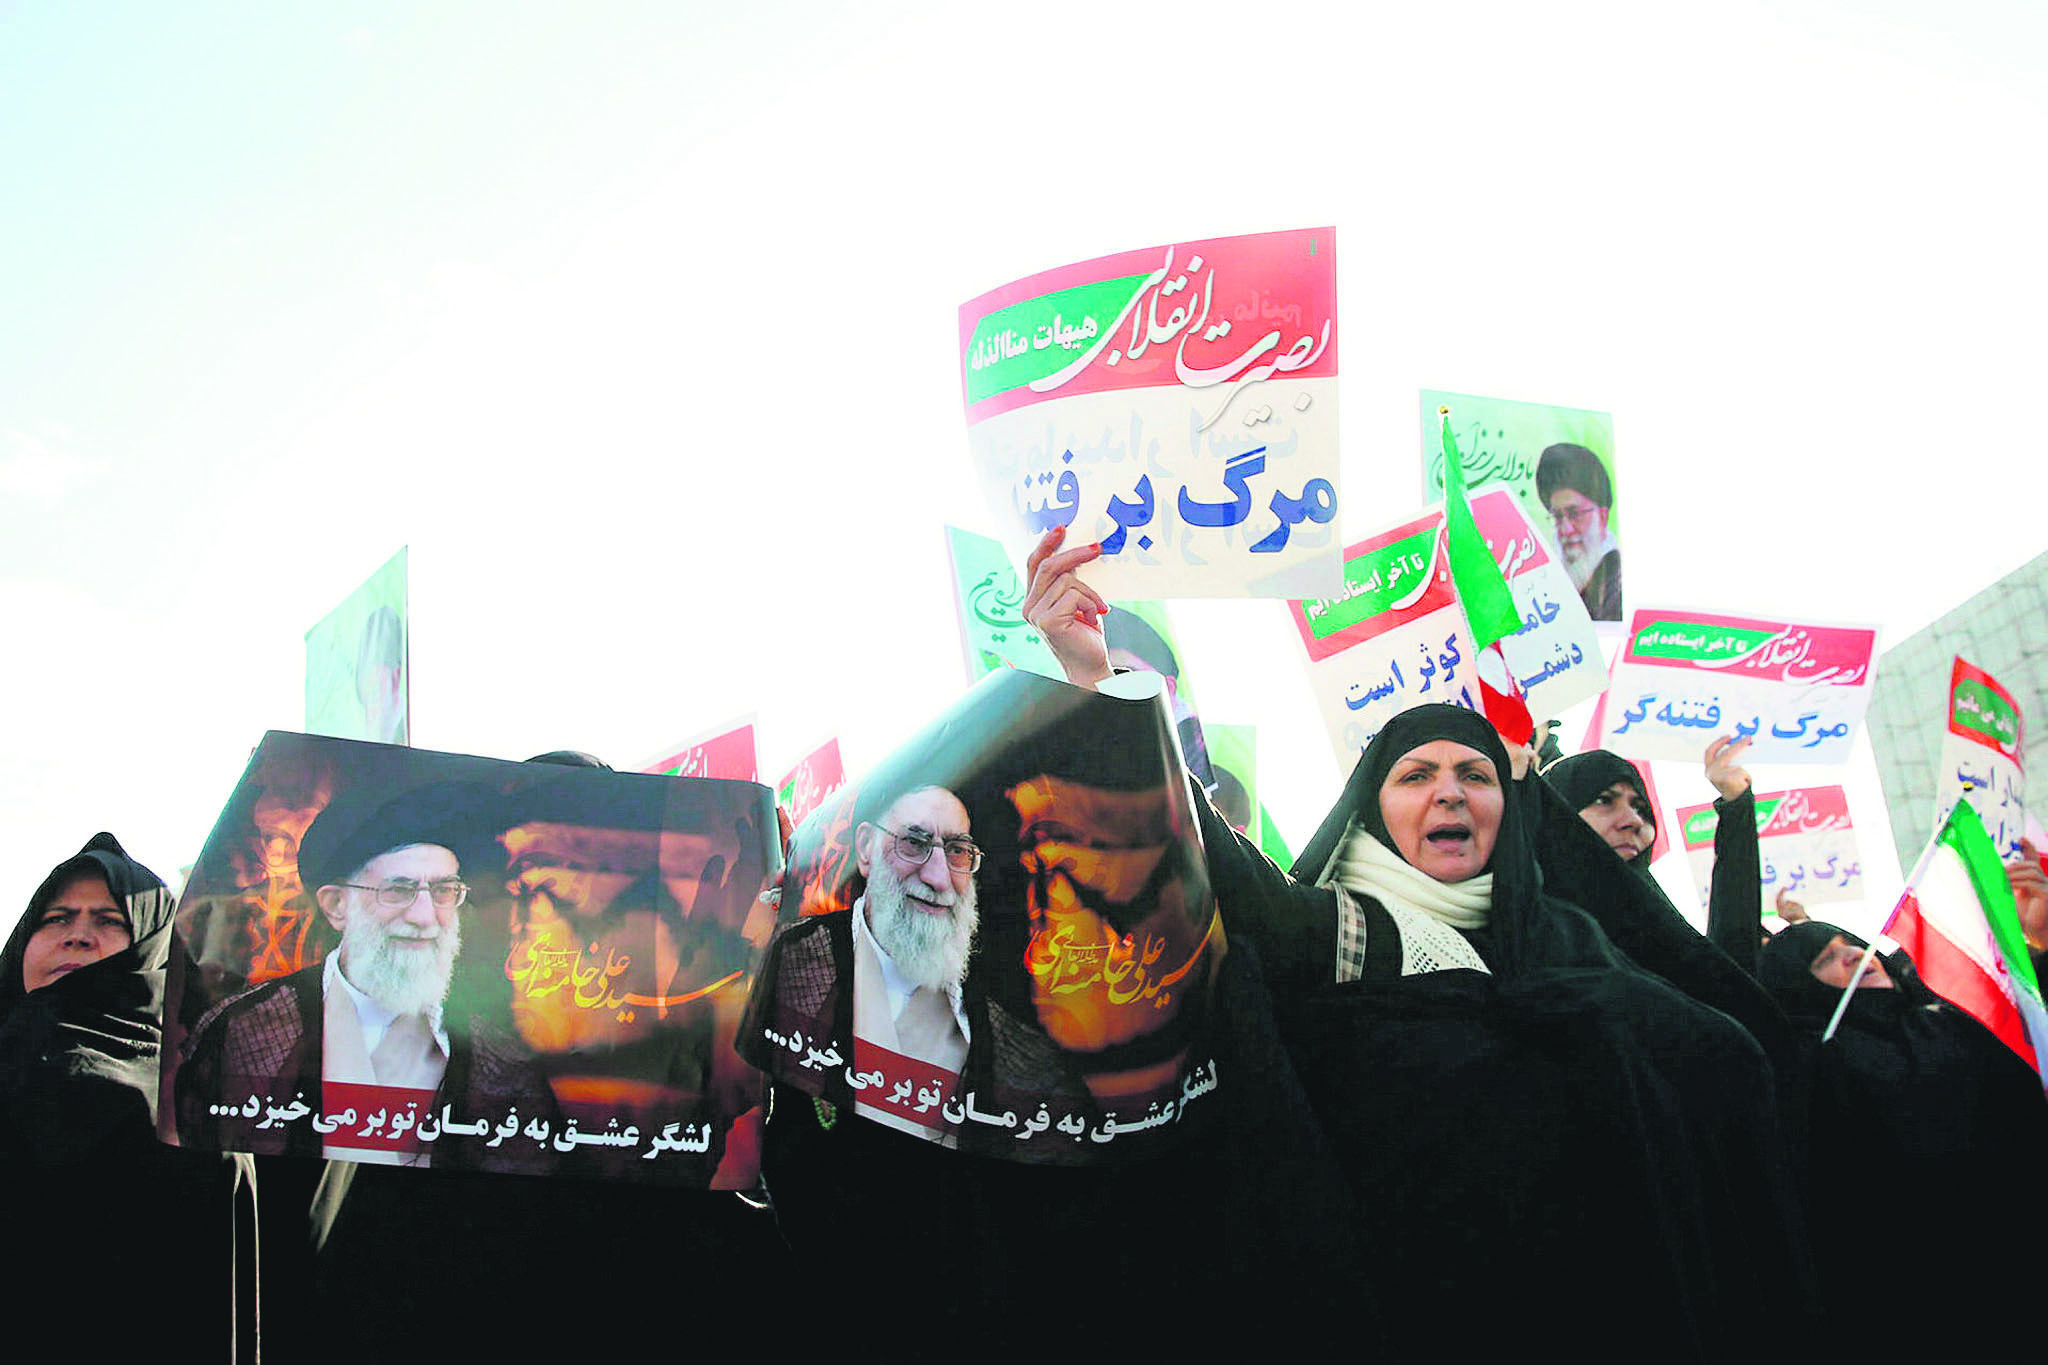 Iranian pro-government supporters hold posters of Supreme Leader Ayatollah Ali Khamenei during a rally in support of the regime after authorities declared the end of deadly unrest, Mashhad, Jan. 4.